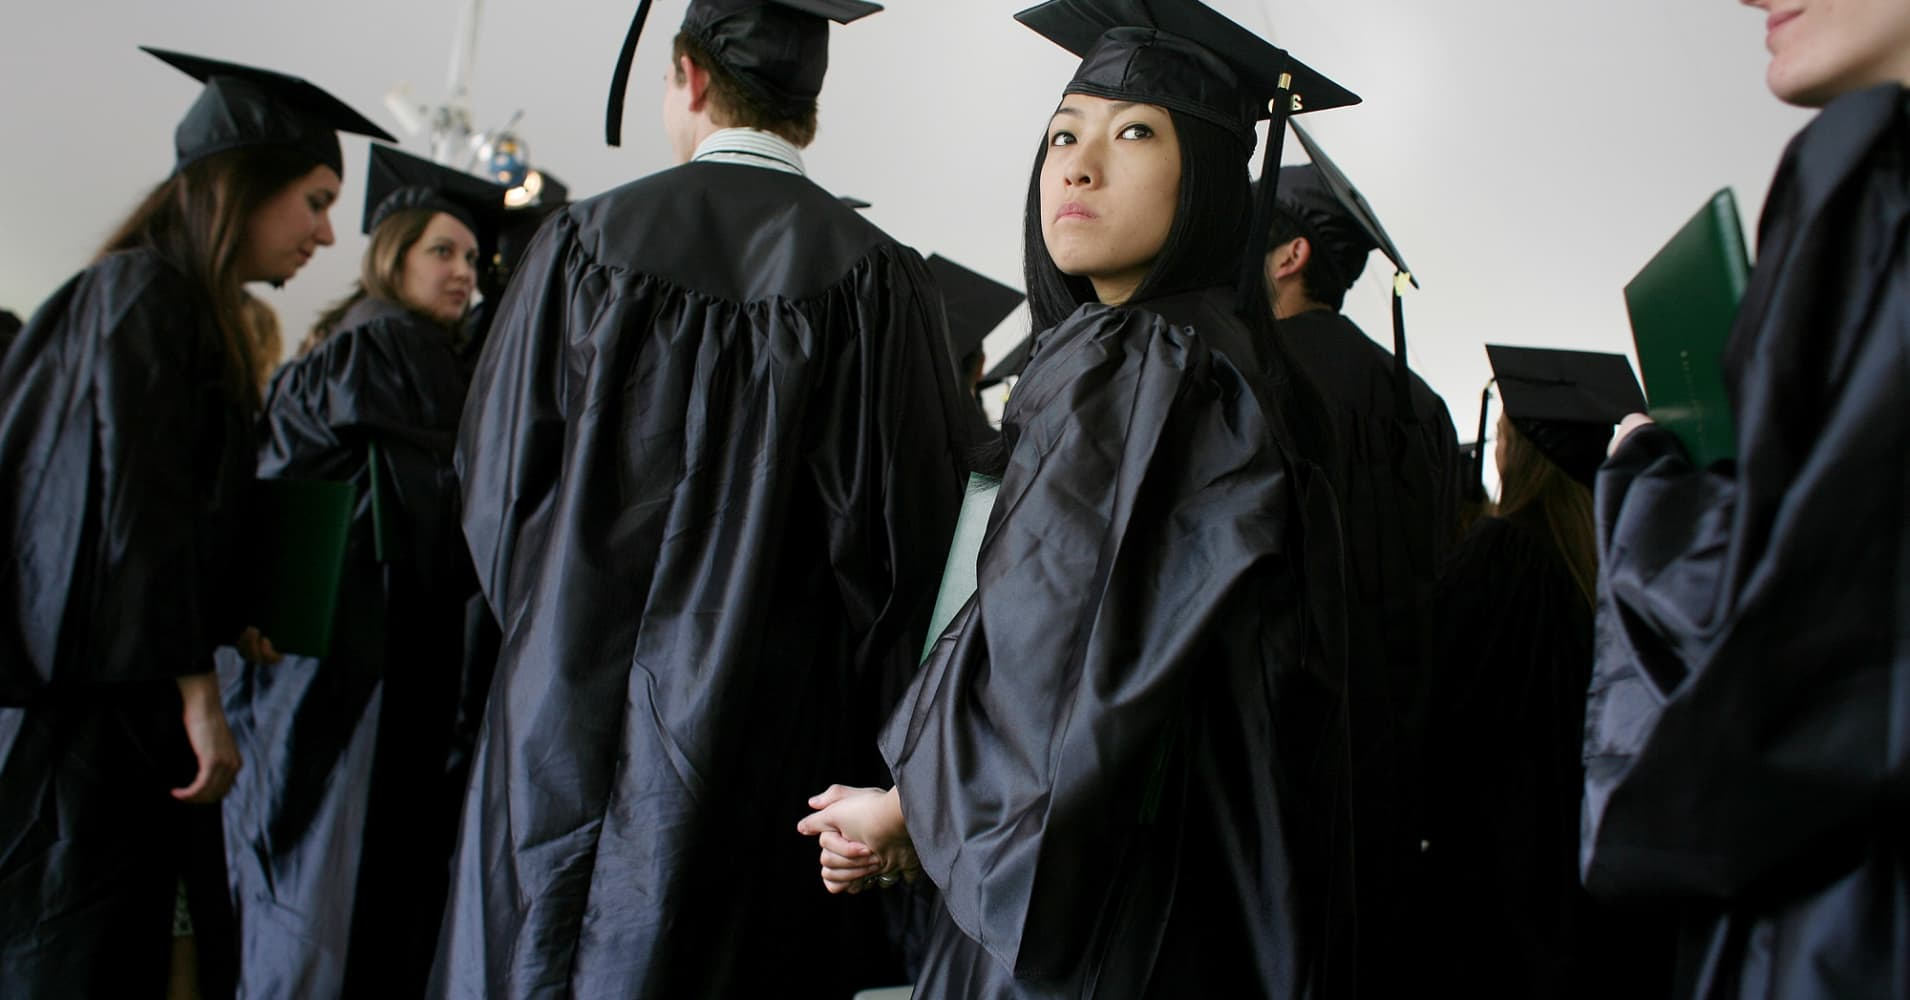 Graduates at Sarah Lawrence College in New York in 2009.